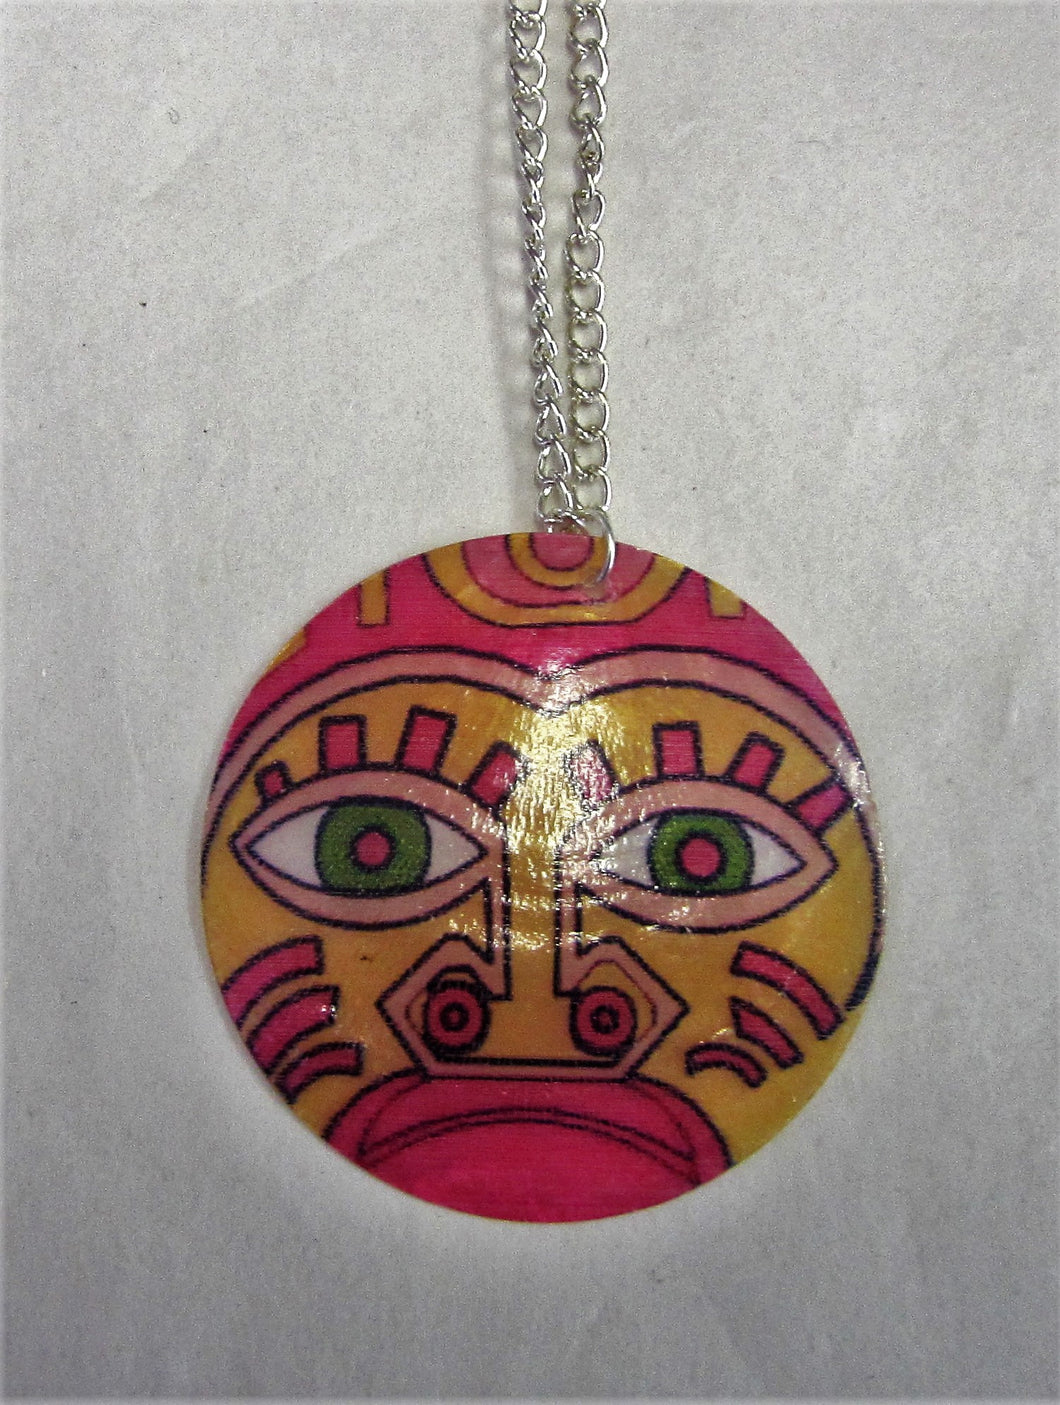 Fun face pendent on sterling silver necklace